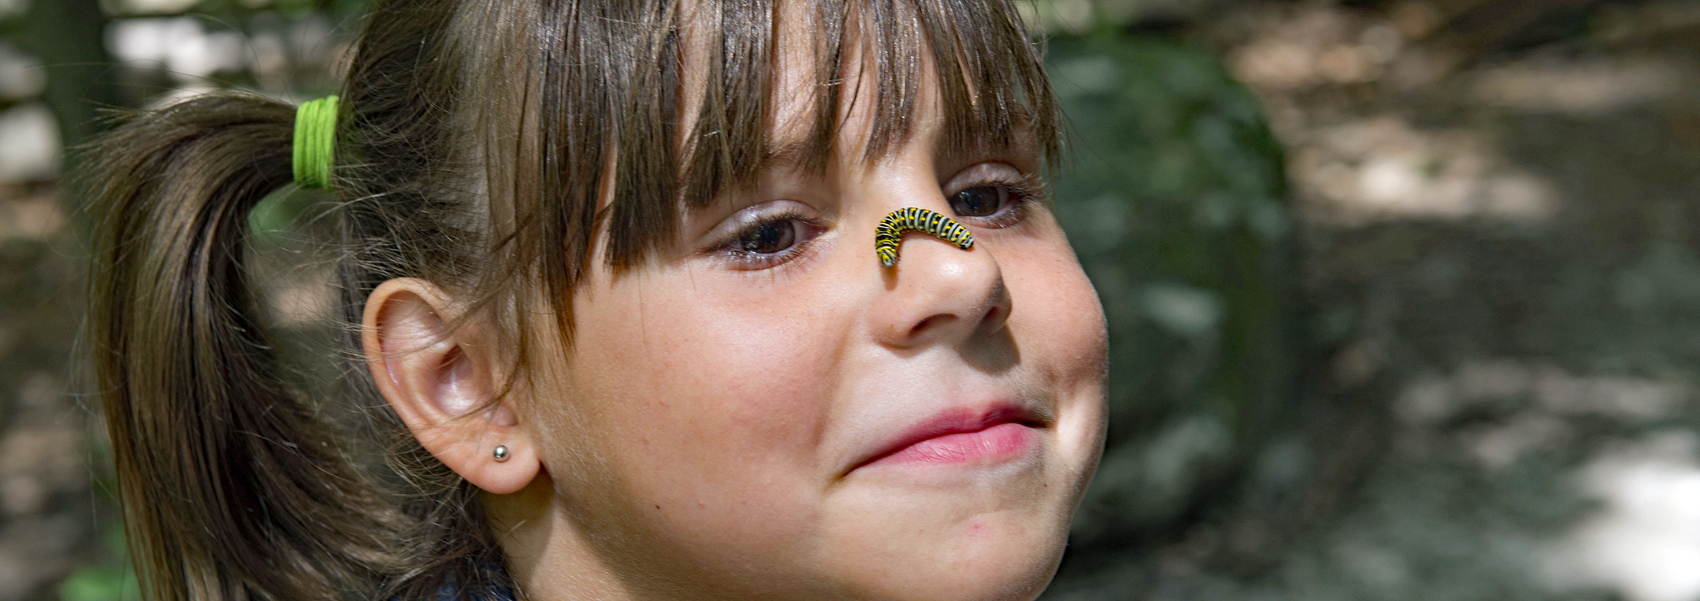 A caterpillar crawls across a young girl's nose